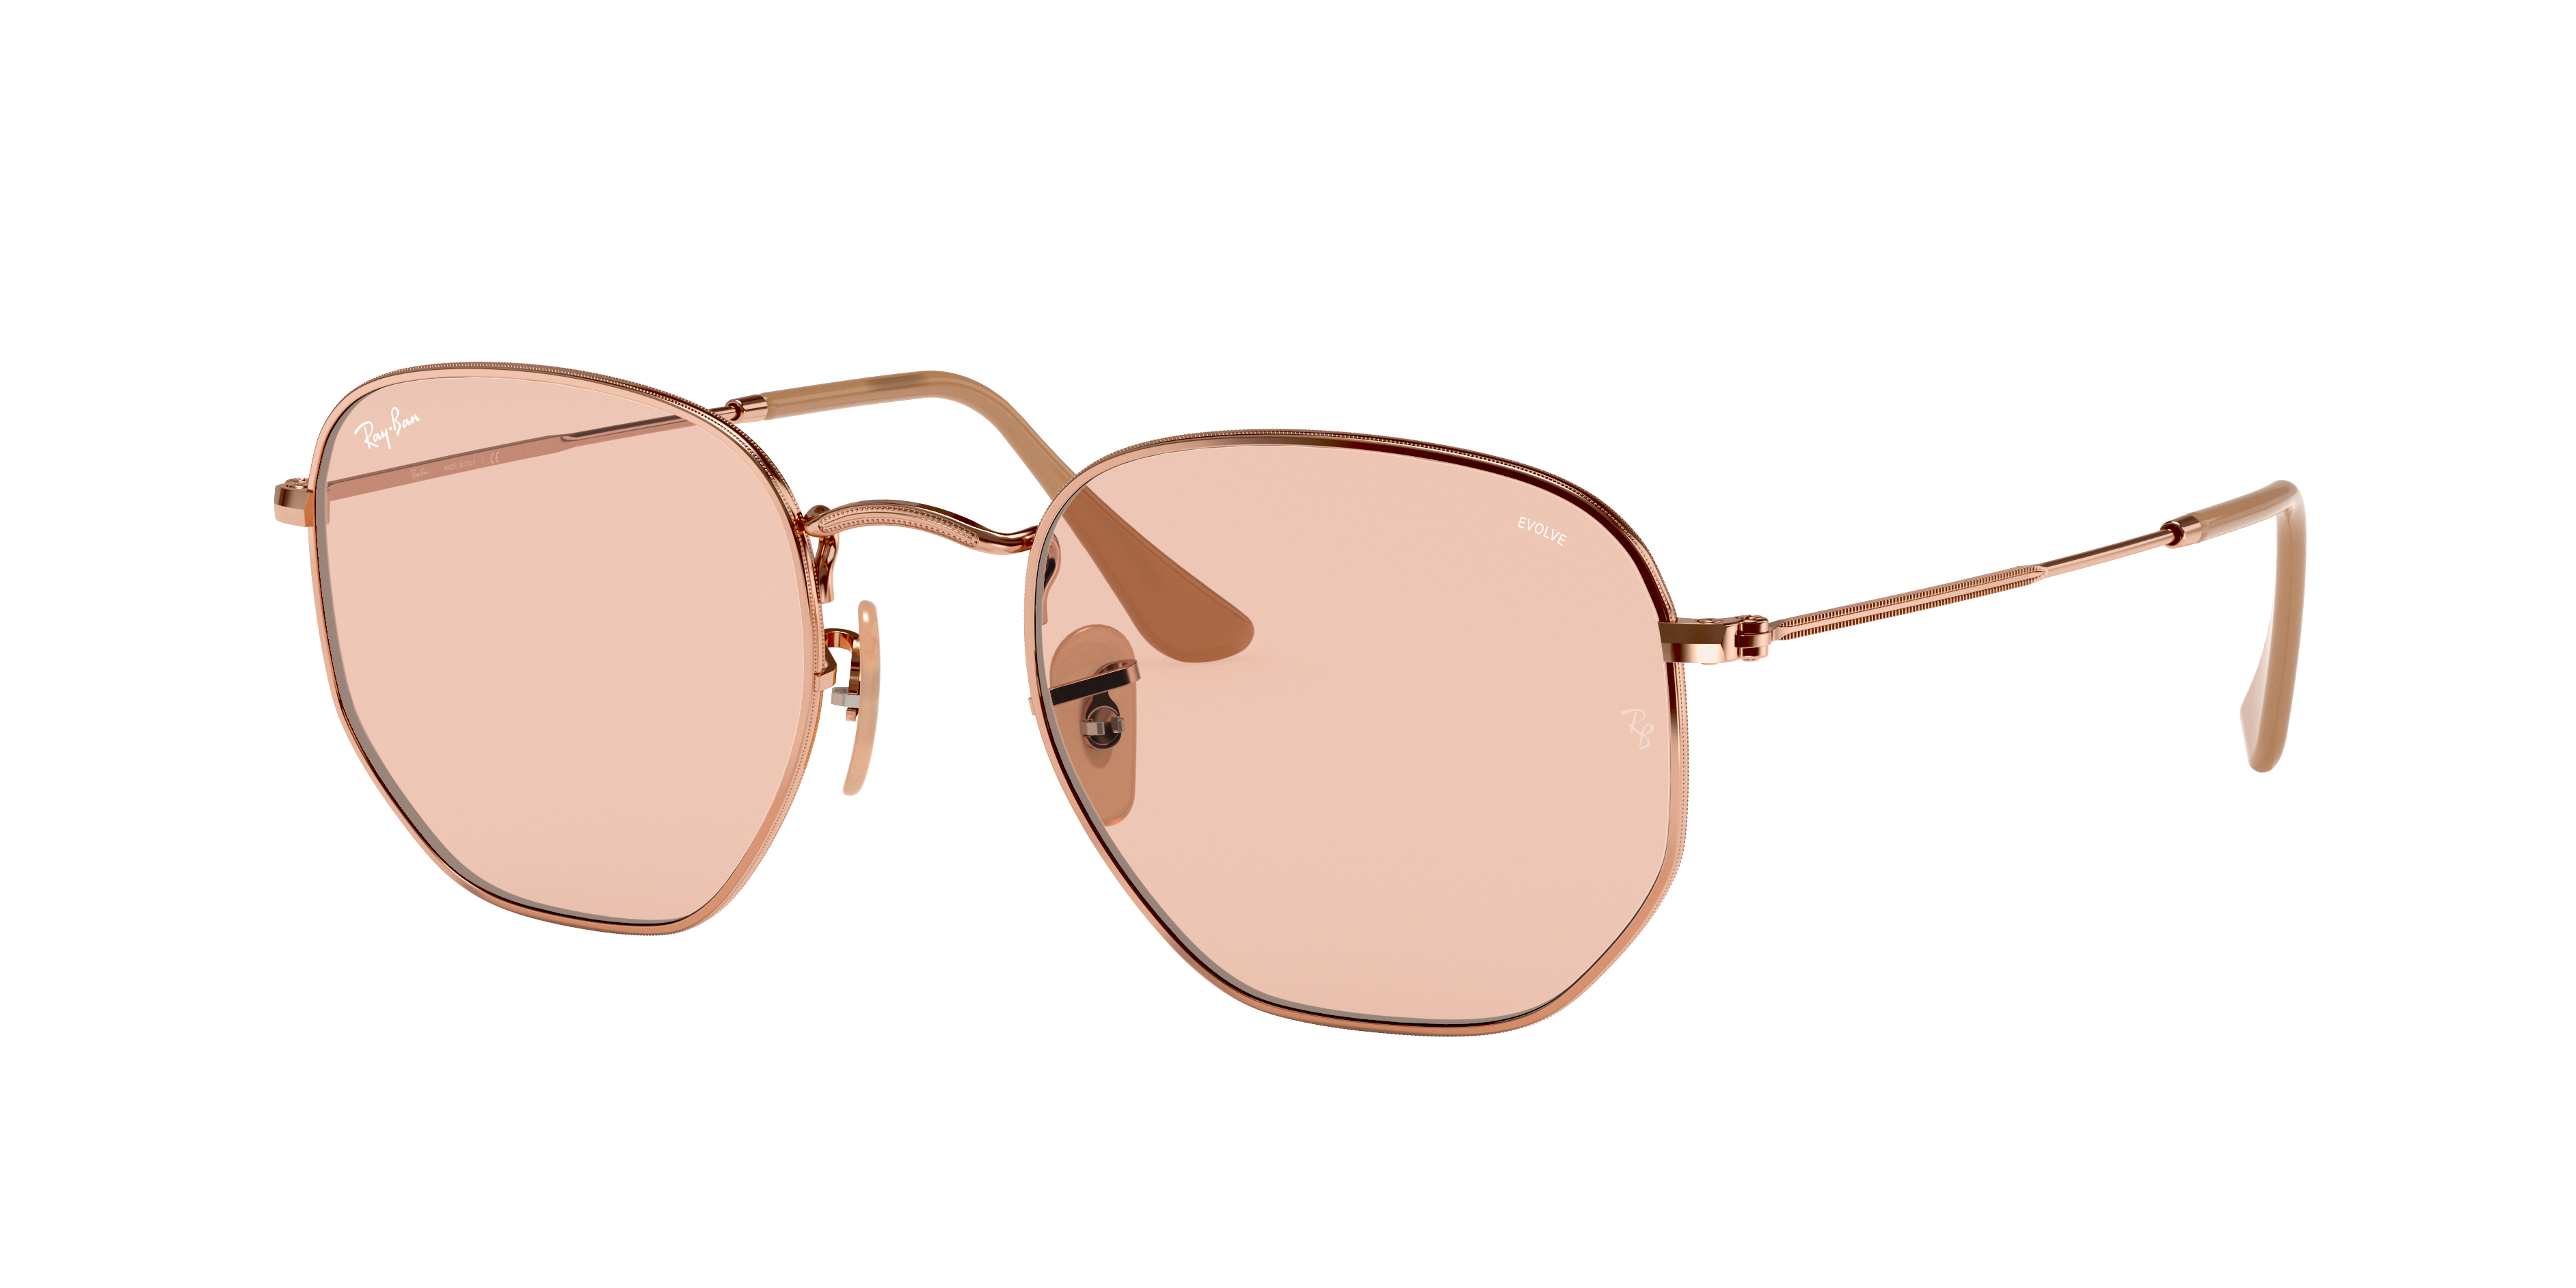 Ray-Ban Hexagonal Washed Evolve Bronze-Copper, Brown Lenses - RB3548N